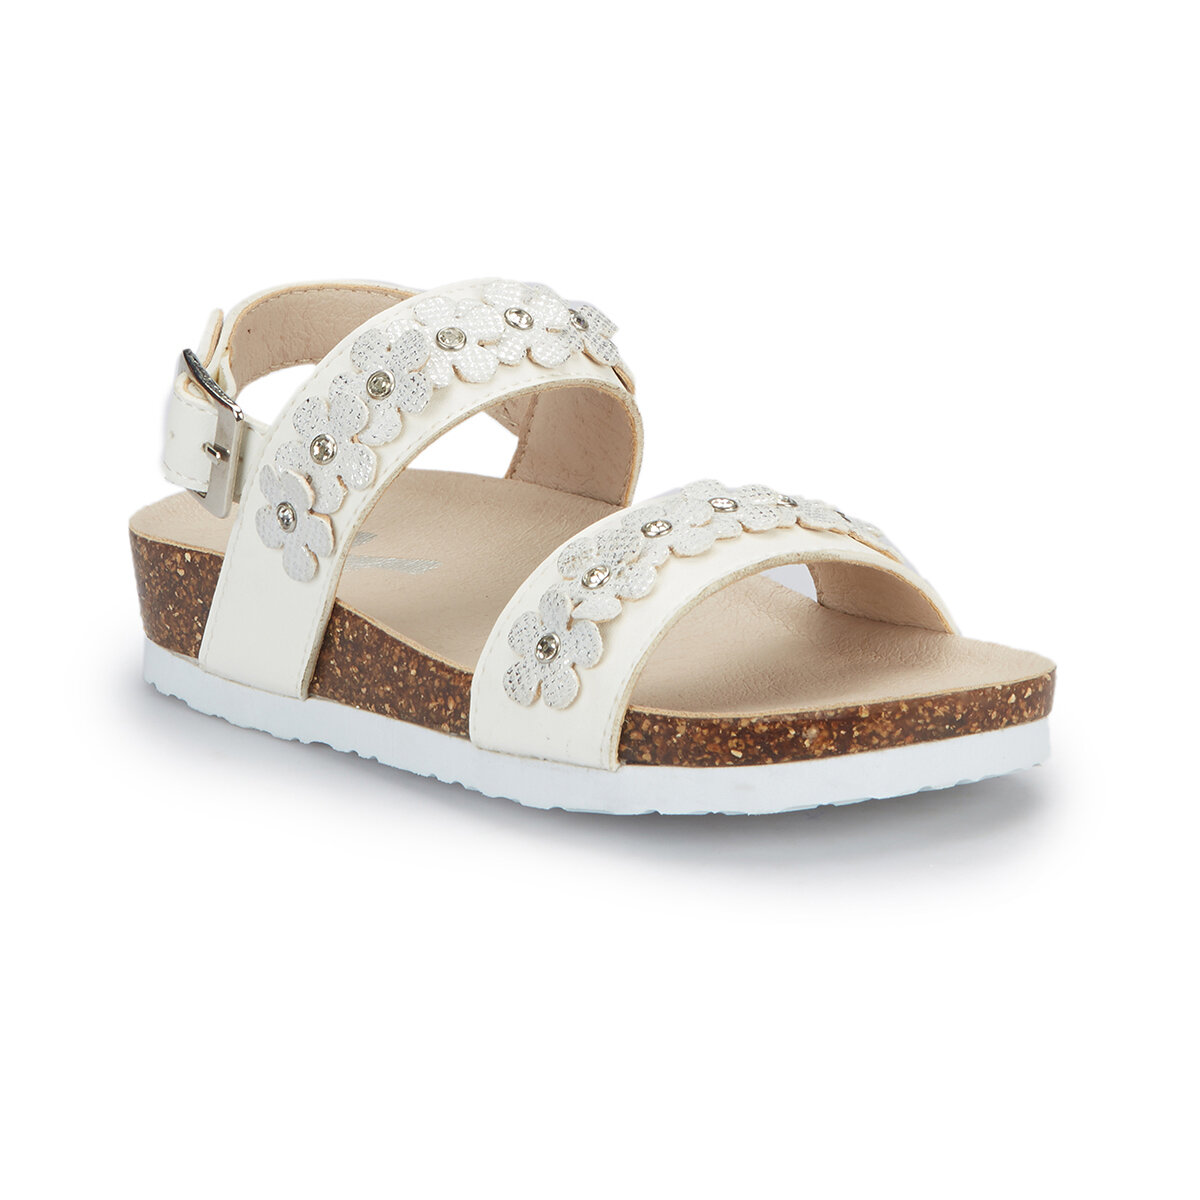 FLO NAKLOW White Female Child Sandals PINKSTEP